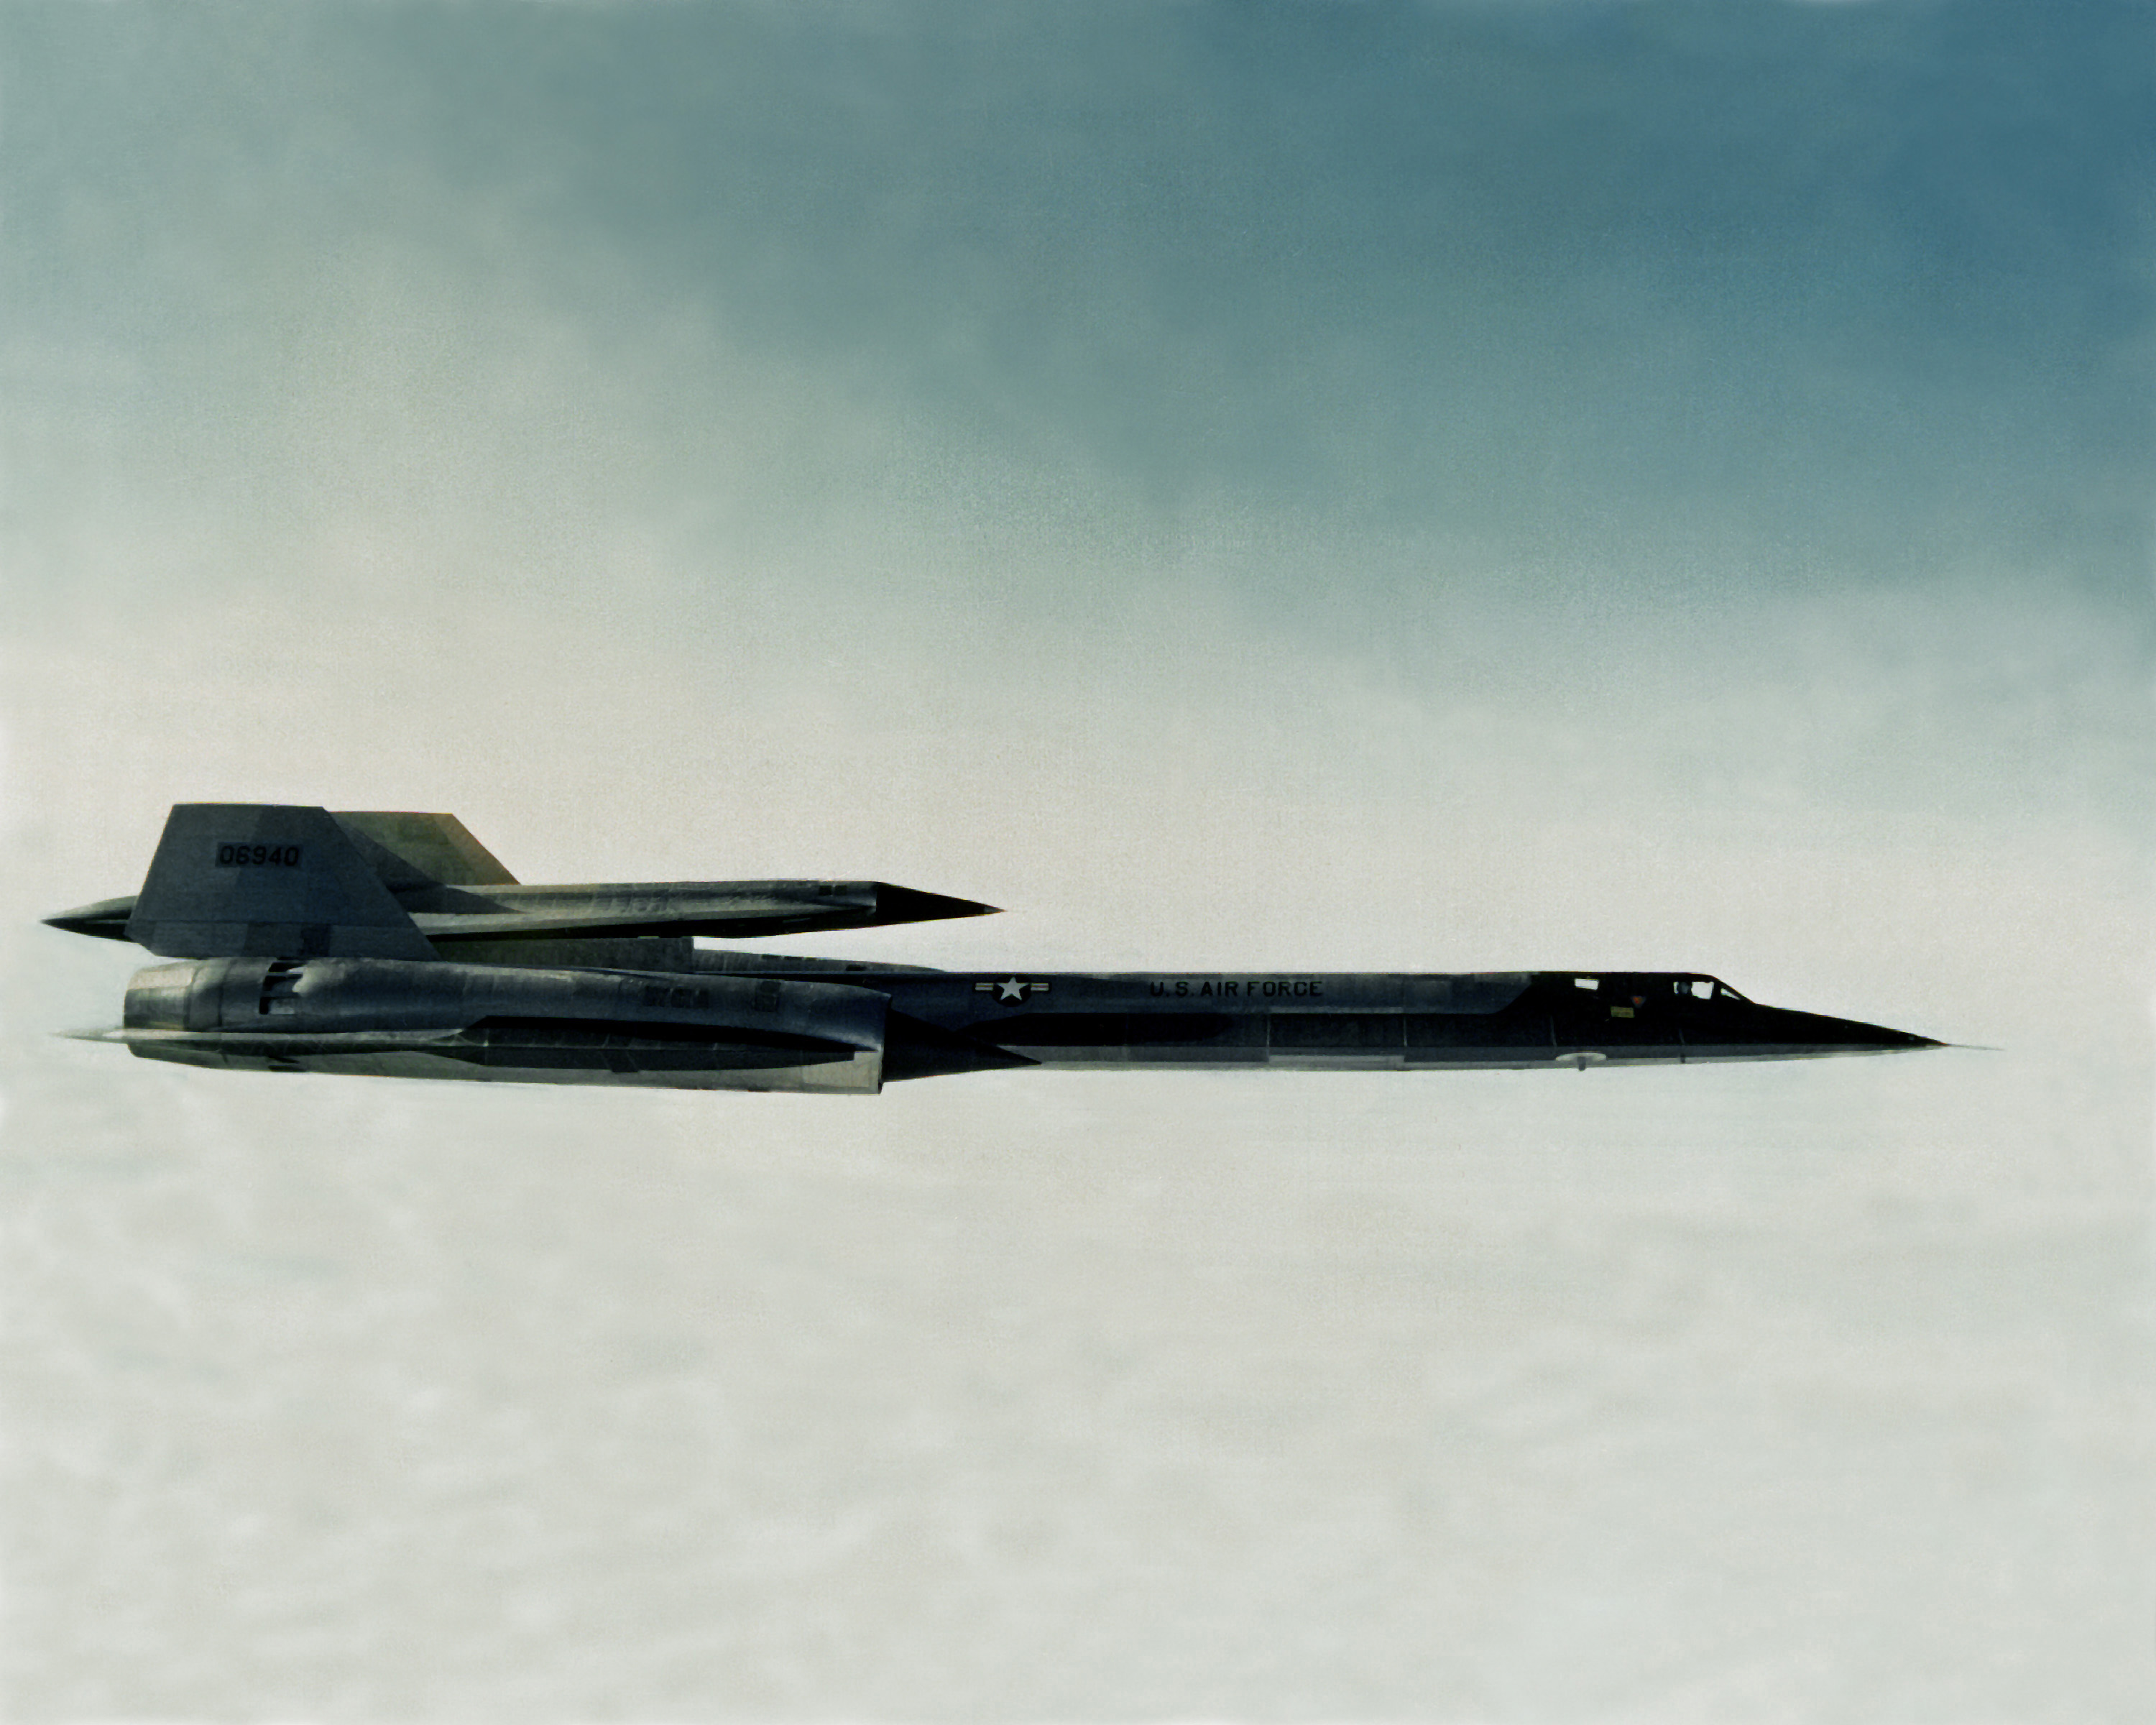 sr 71 with drone with File Lockheed M 21 With D 21 Drone In Flight C1965 on Ufo Special Reports Black Triangles moreover  as well 737863 likewise Museum Of Flight Lockheed M 21 Blackbird The Cia Spy Drone Mothership moreover Declassified Sr 71 Mix.